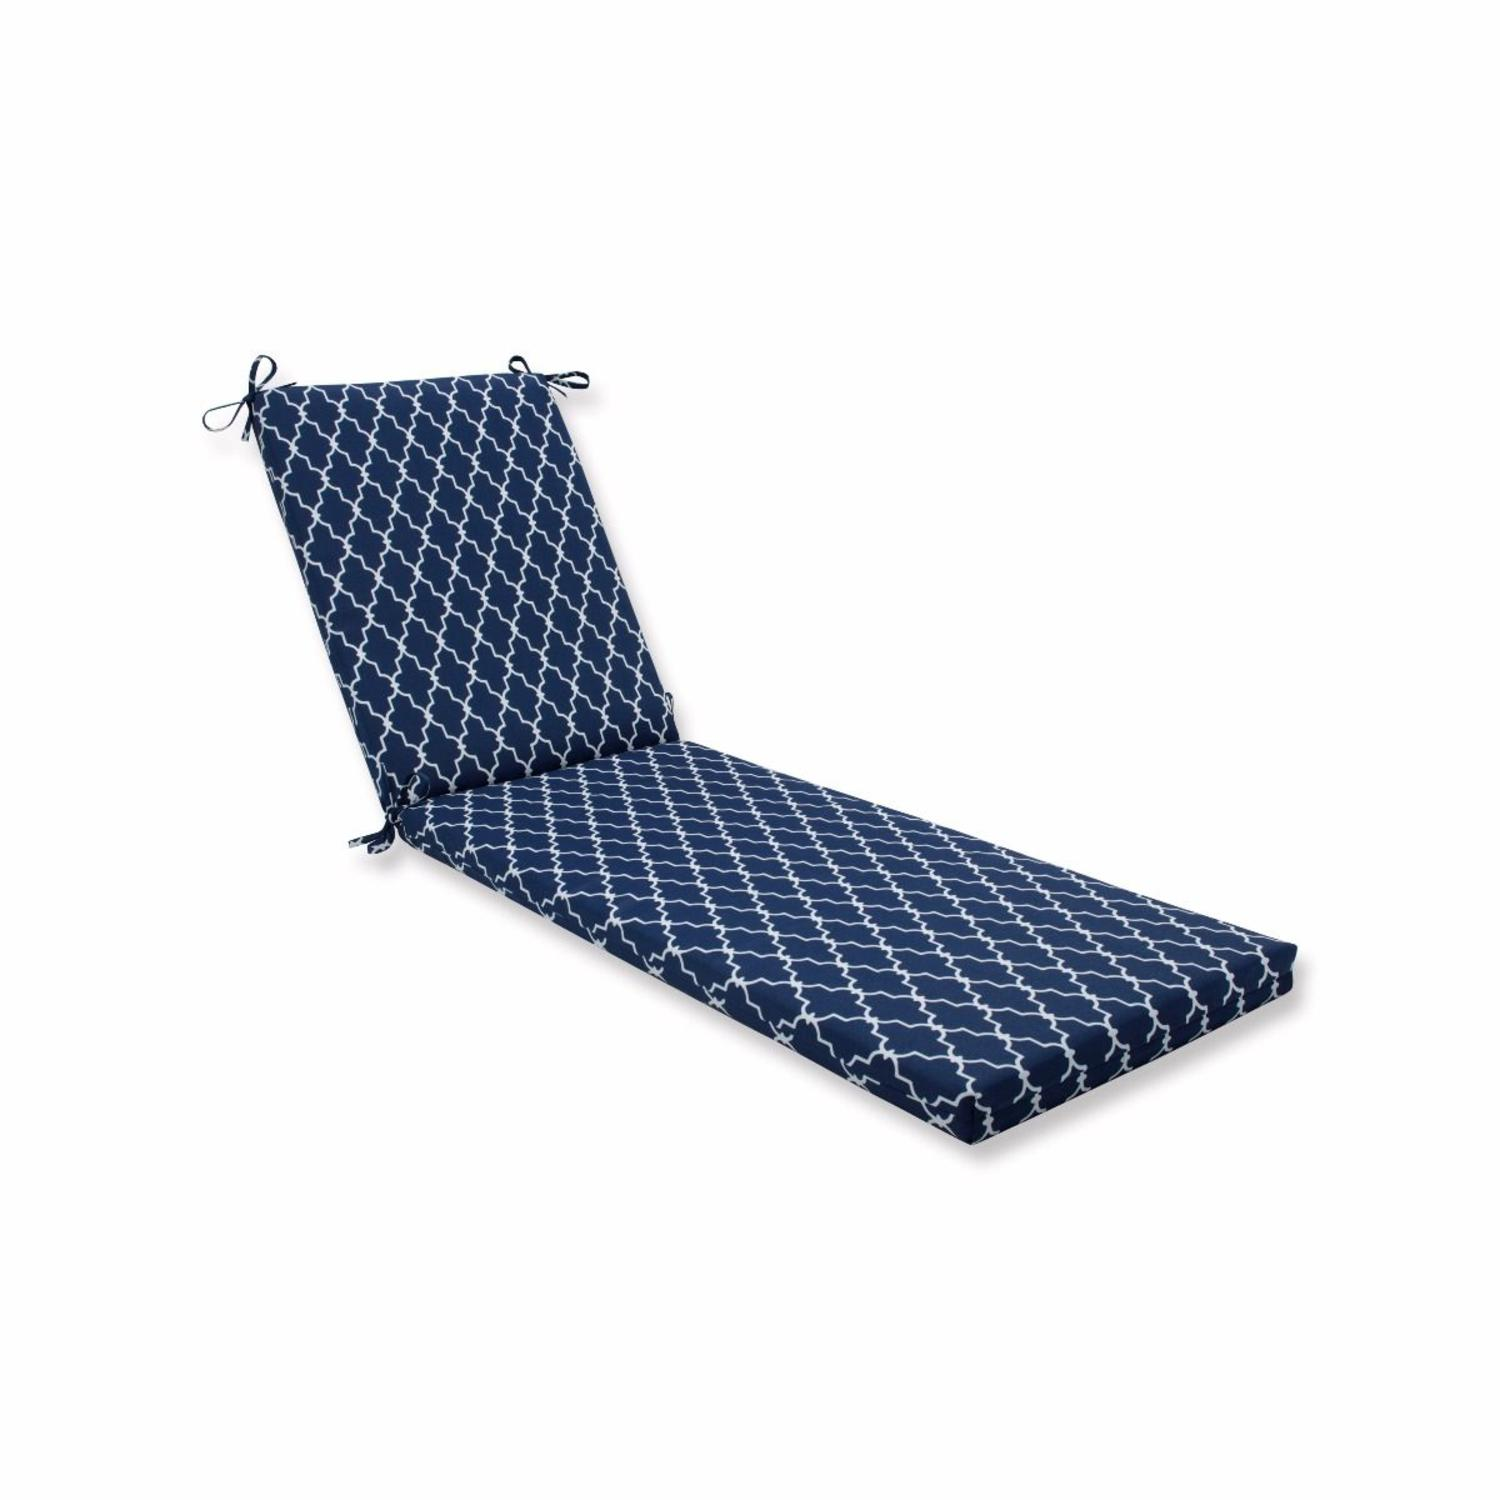 "80"" Blue Geometric UV/Fade Resistant Outdoor Patio Chaise Lounge Cushion with Ties"